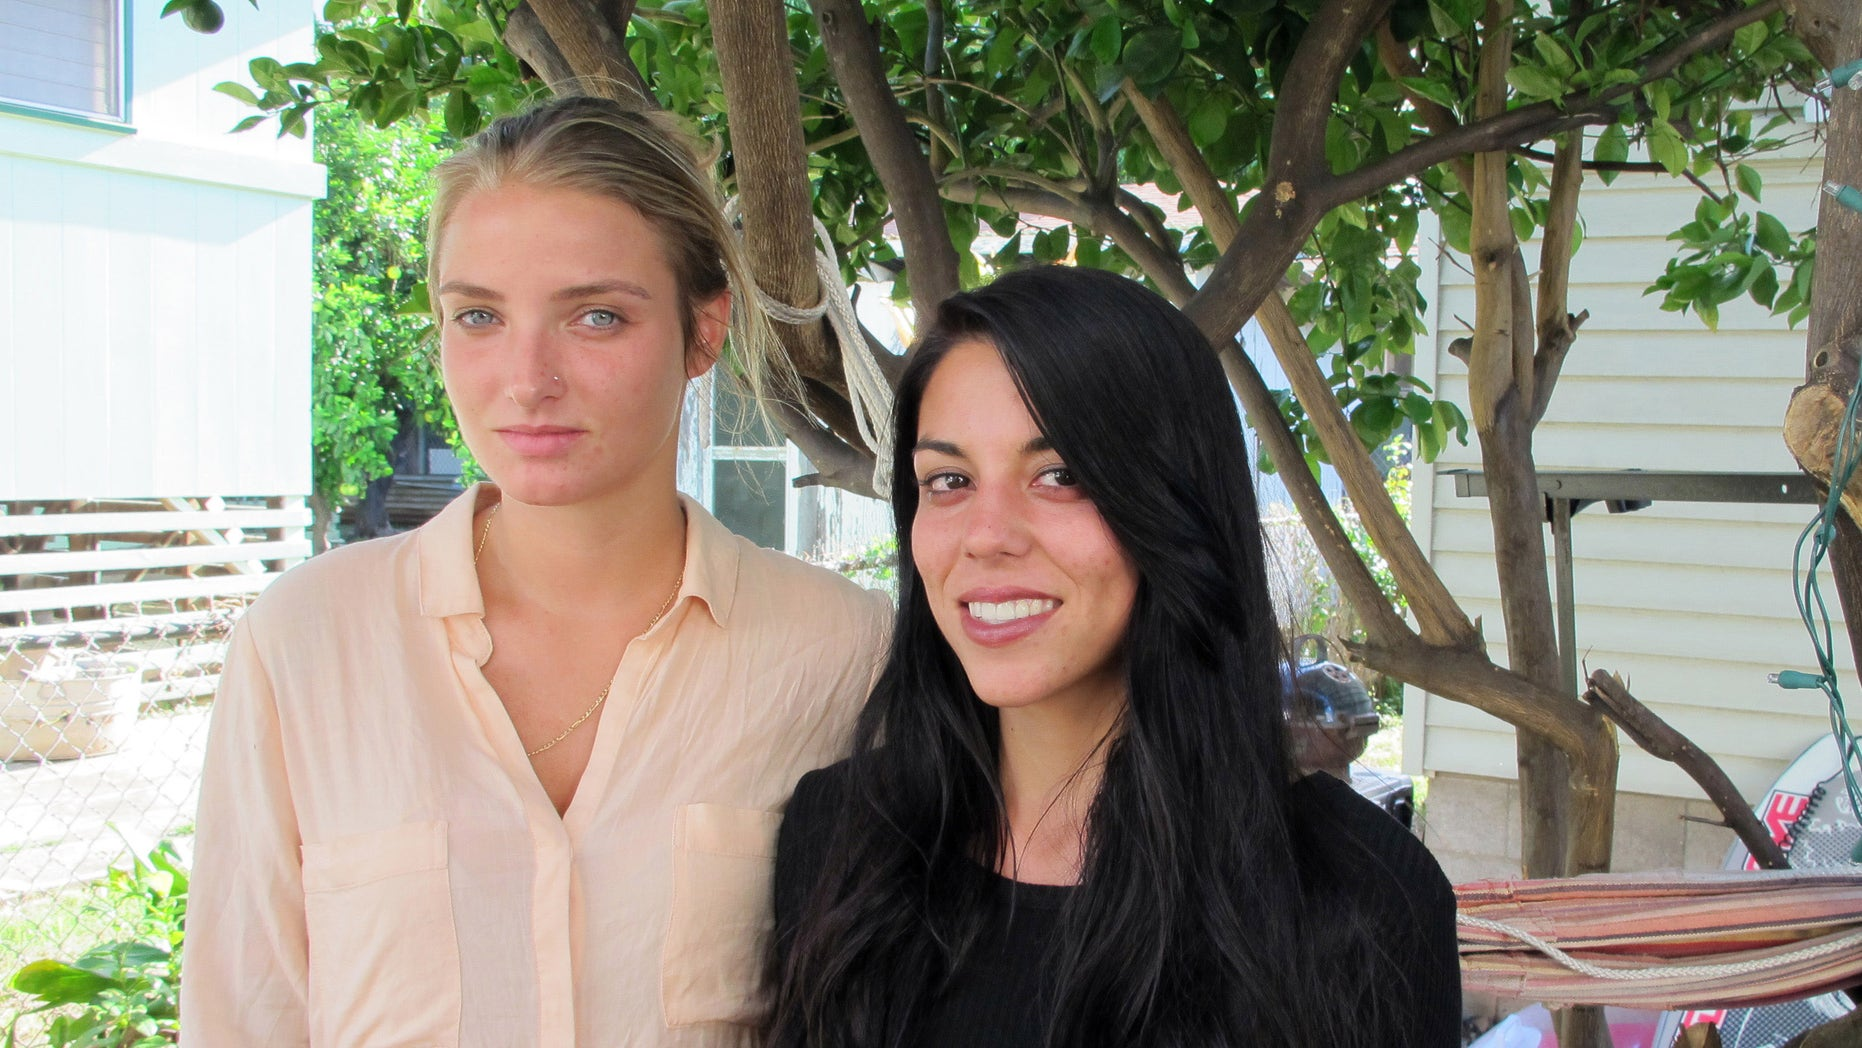 File-This Oct. 28, 2015, file photo shows Courtney Wilson, left, and Taylor Guerrero posing for a photo in Honolulu.  Honolulu will pay $80,000 to settle a lesbian couple's lawsuit alleging a city's police officer wrongfully arrested them after seeing them kissing in a grocery store while on vacation. The settlement was announced Friday, May 20, 2016, in federal court in Honolulu. It's still subject to City Council approval. Wilson and  Guerrero were visiting Hawaii form Los Angeles last year when they say they were harassed and arrested because the officer didn't like their public displays of affection in a Foodland store on Oahu's North Shore. (AP Photo/Jennifer Sinco Kelleher, File)